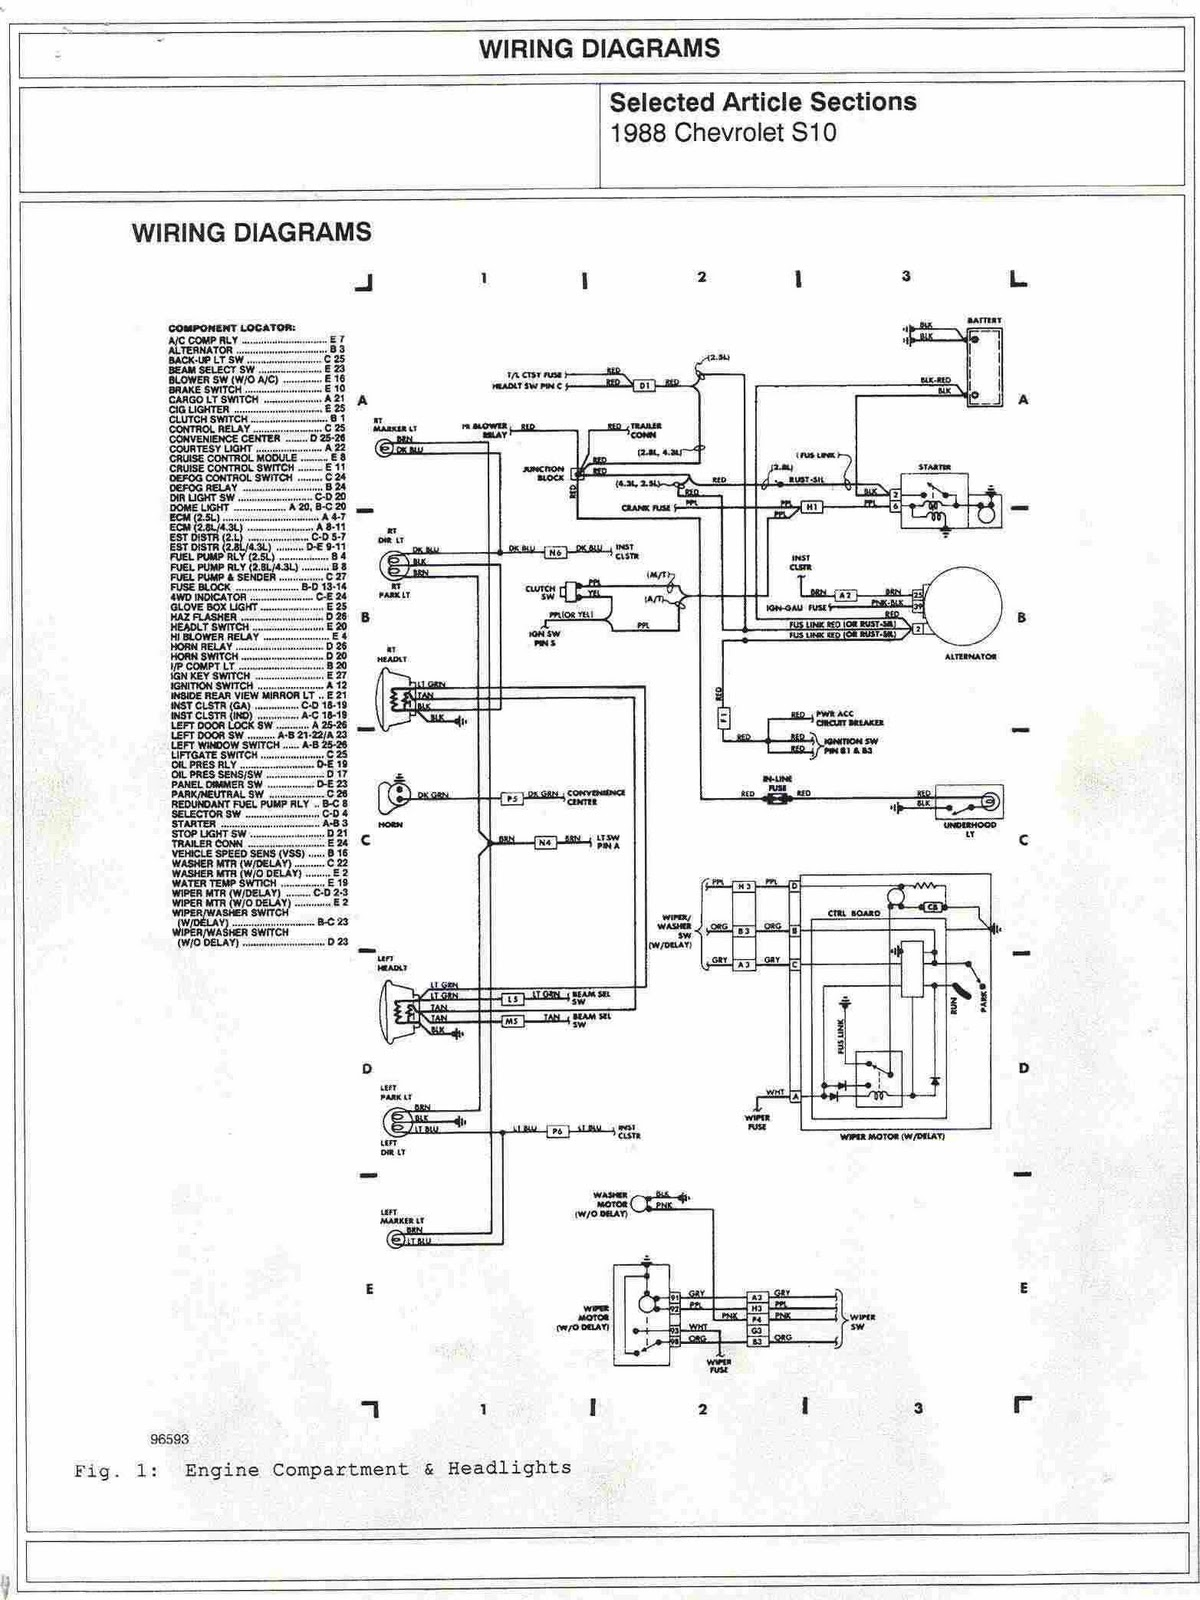 2009 Chevy Express Fuel System Control Module Wiring Schematic 62 2001 Diagram 1988 Truck Schematics U2022 Chevrolet S10 Engine Compartment And Headlights